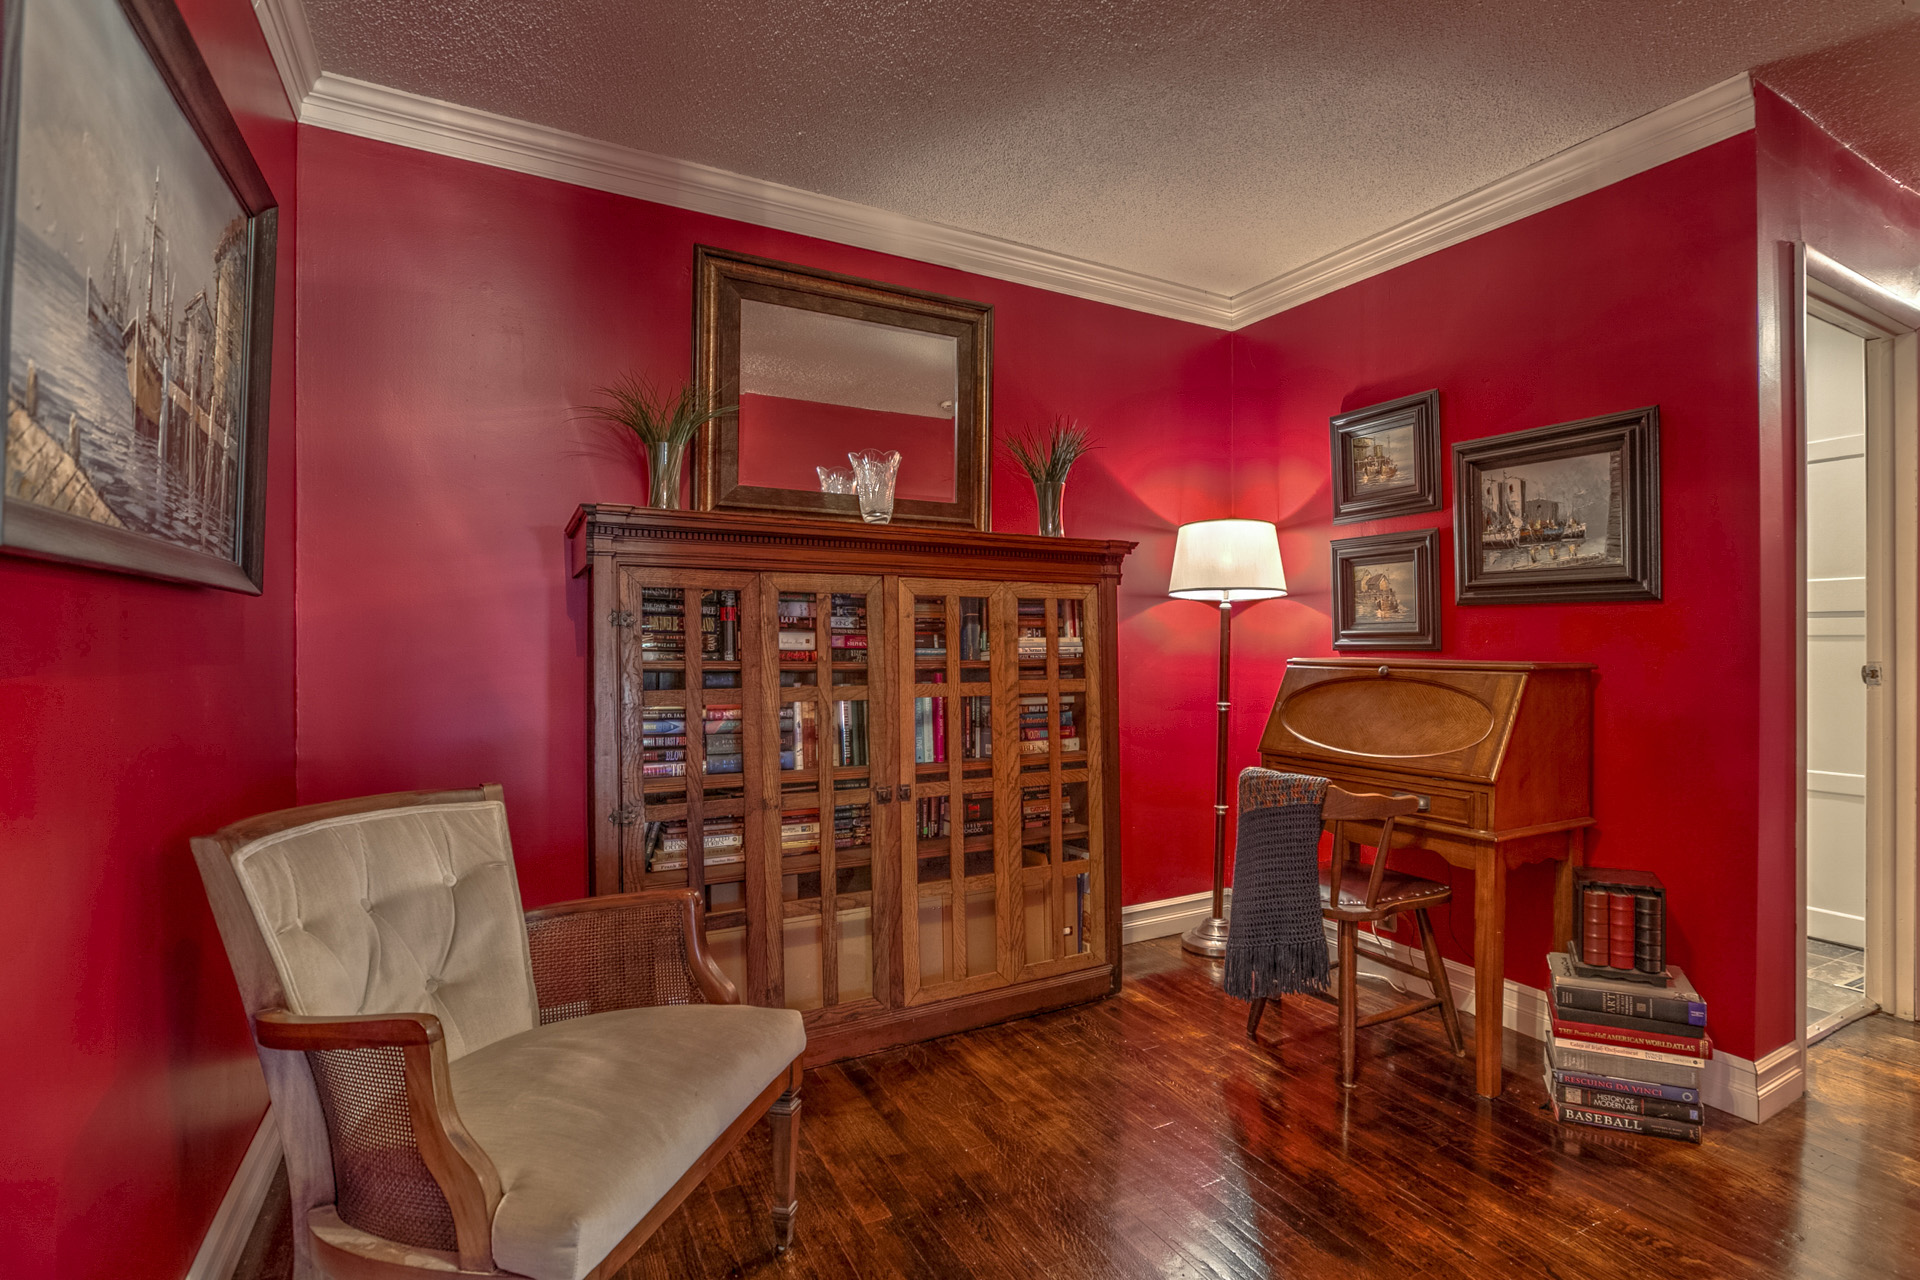 Home Sitting Room with Red Walls and Antique Bookcase